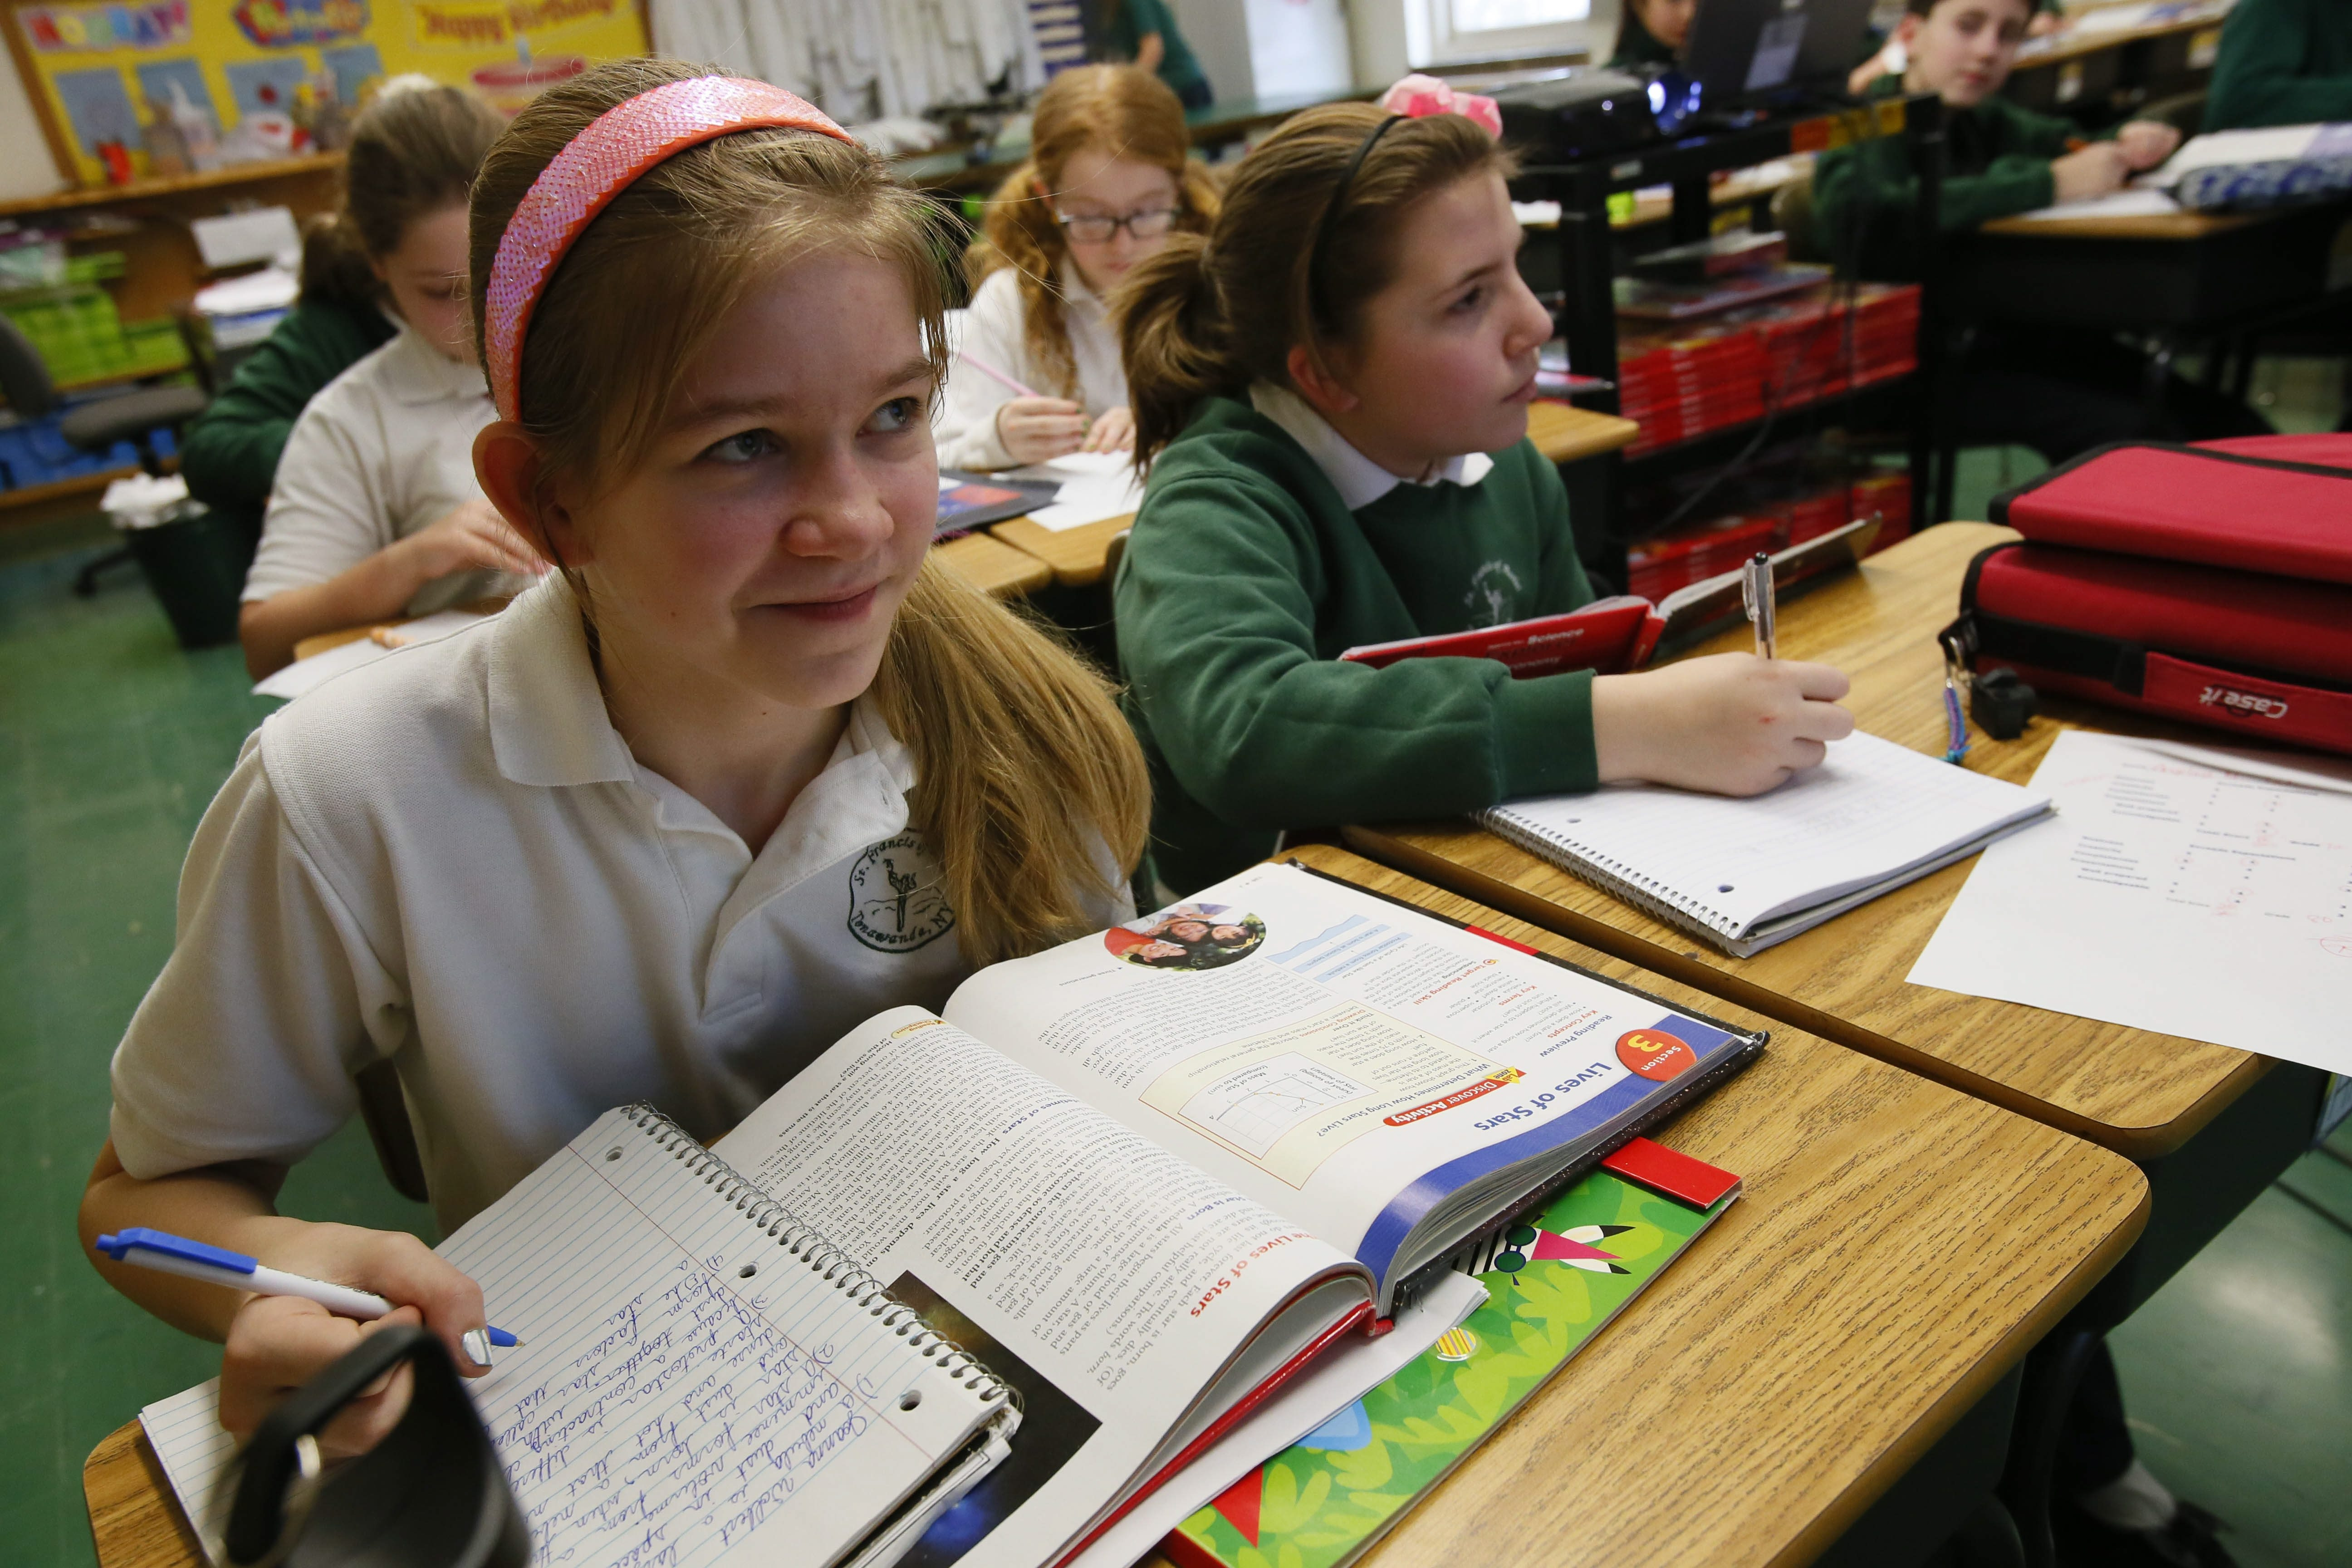 Sixth-grade students Joanna Wolbert, left, and Angelina Meranto hit the books during science class Thursday at St. Francis of Assisi School in the City of Tonawanda.